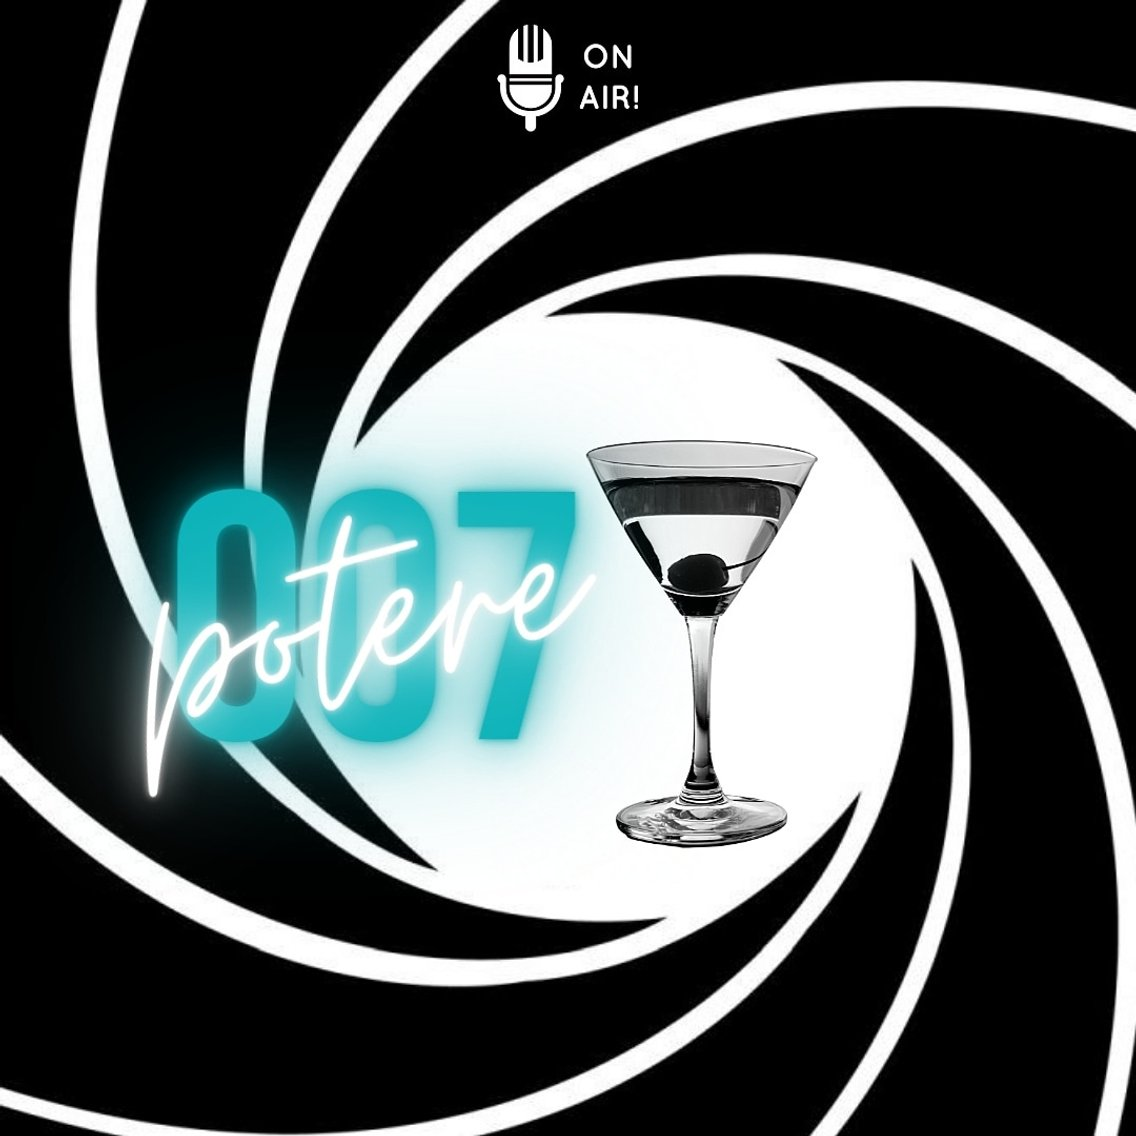 Potere & 007 - Cover Image